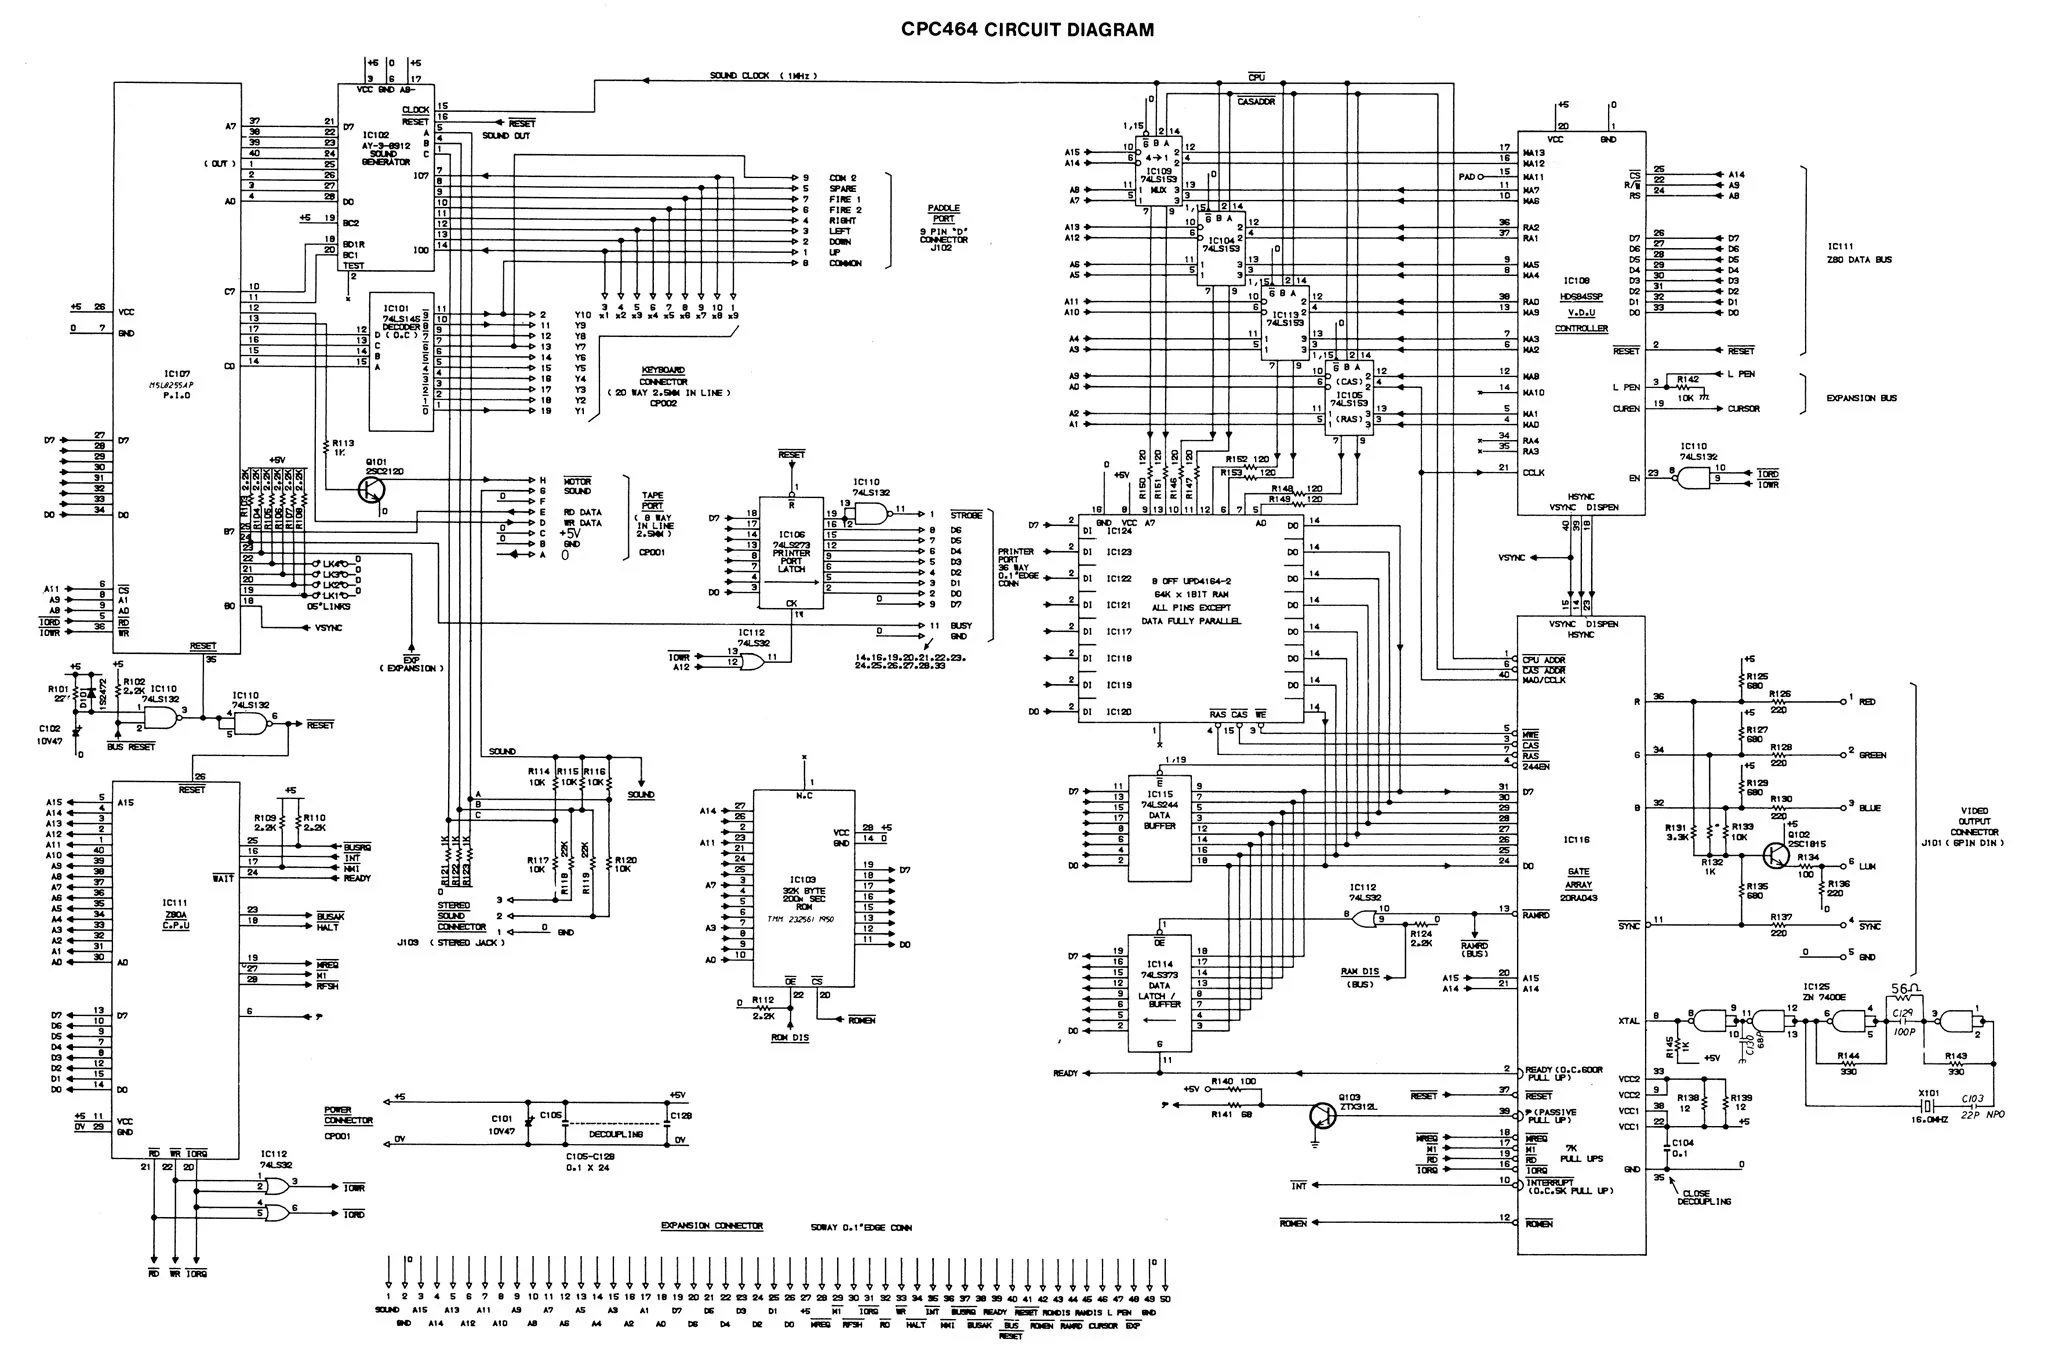 N1996 Motherboard Wiring Diagram : 32 Wiring Diagram